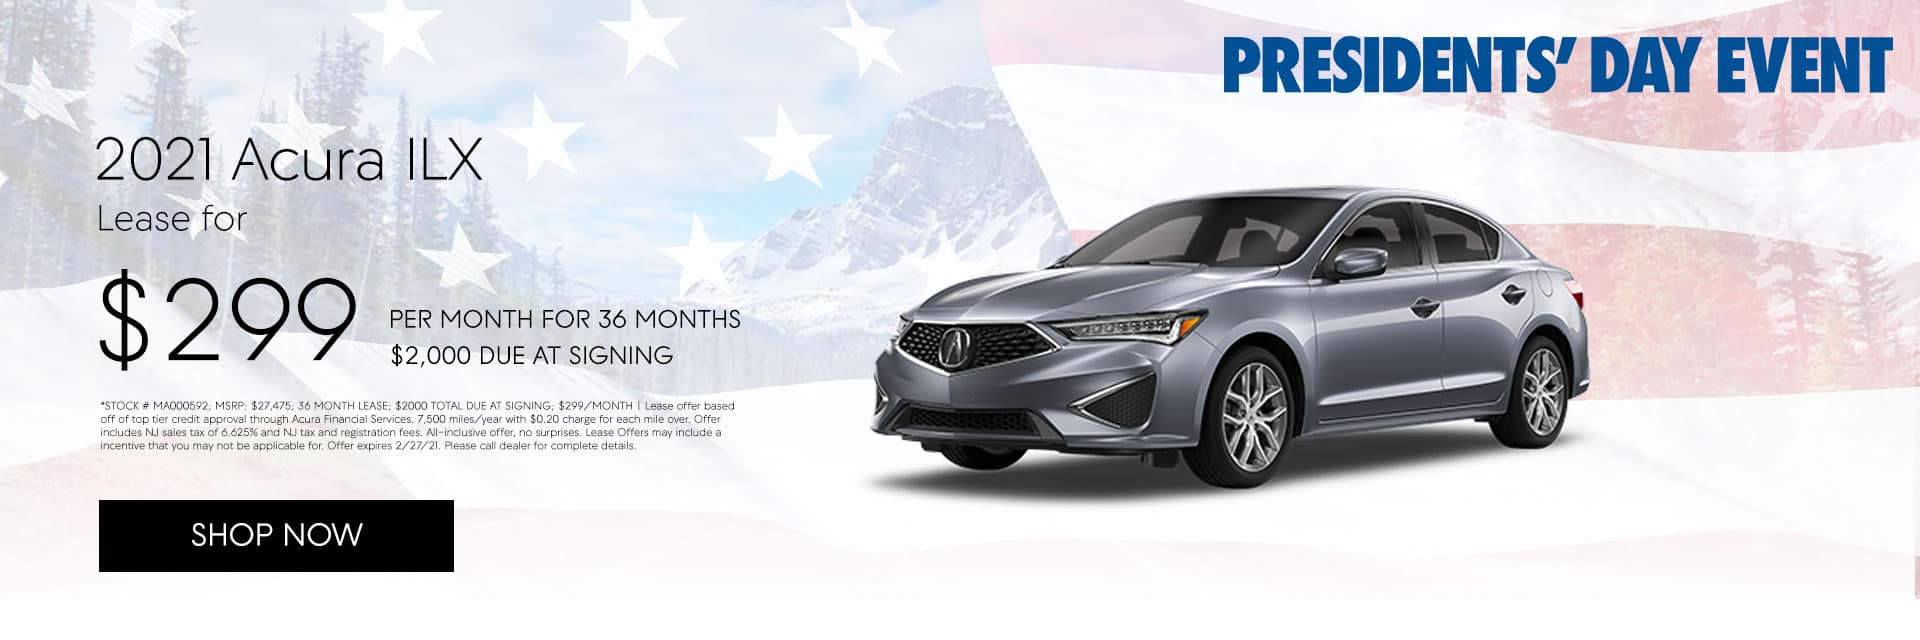 2021 Acura ILX: Lease for $299/mo for 36 months with $2,000 due at signing*